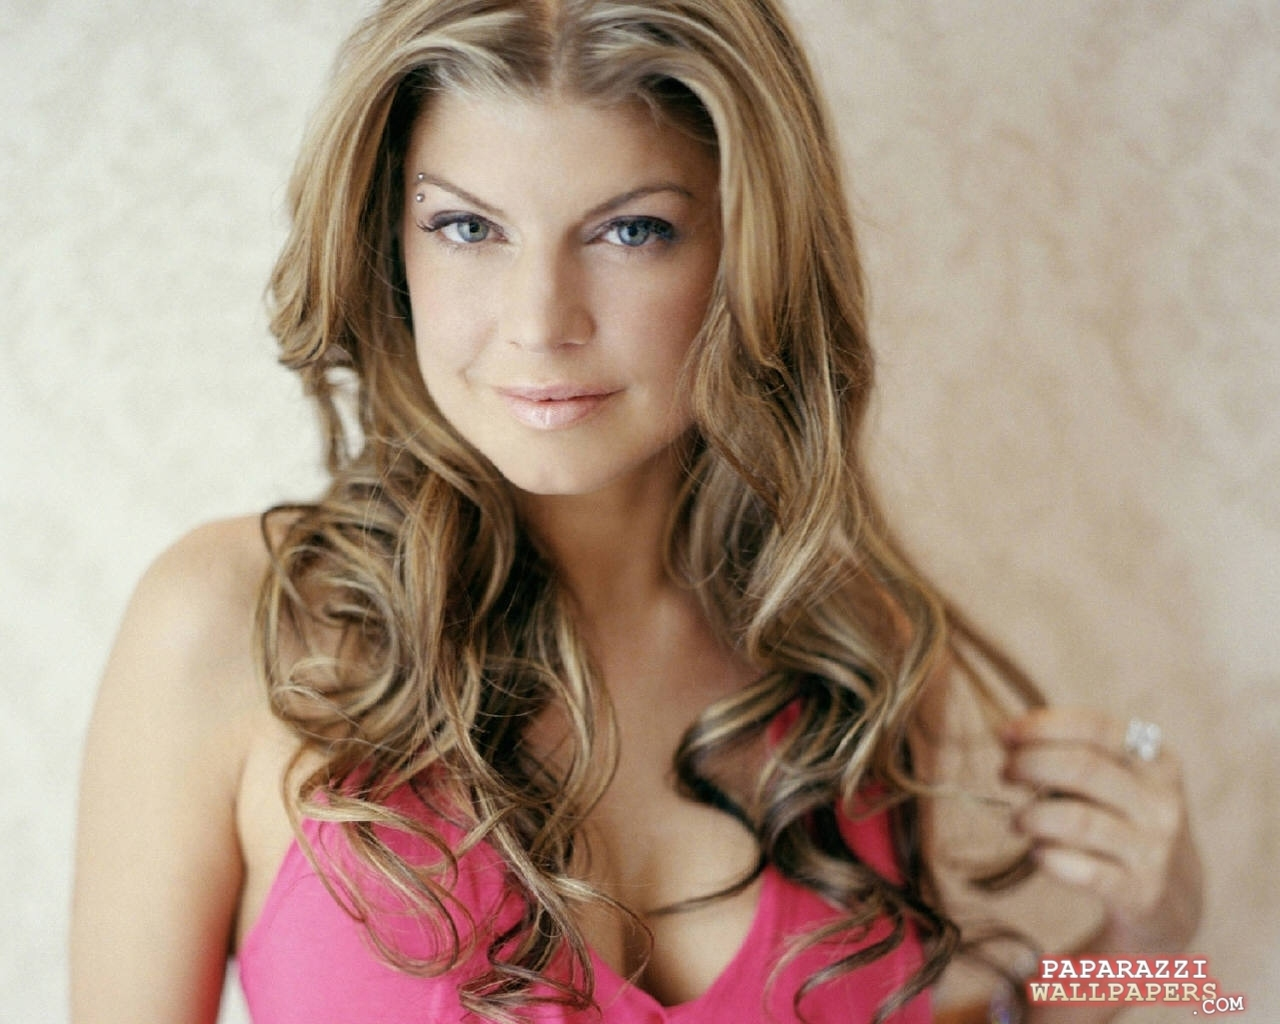 Fergie images Fergie the dutchess HD wallpaper and background photos ...